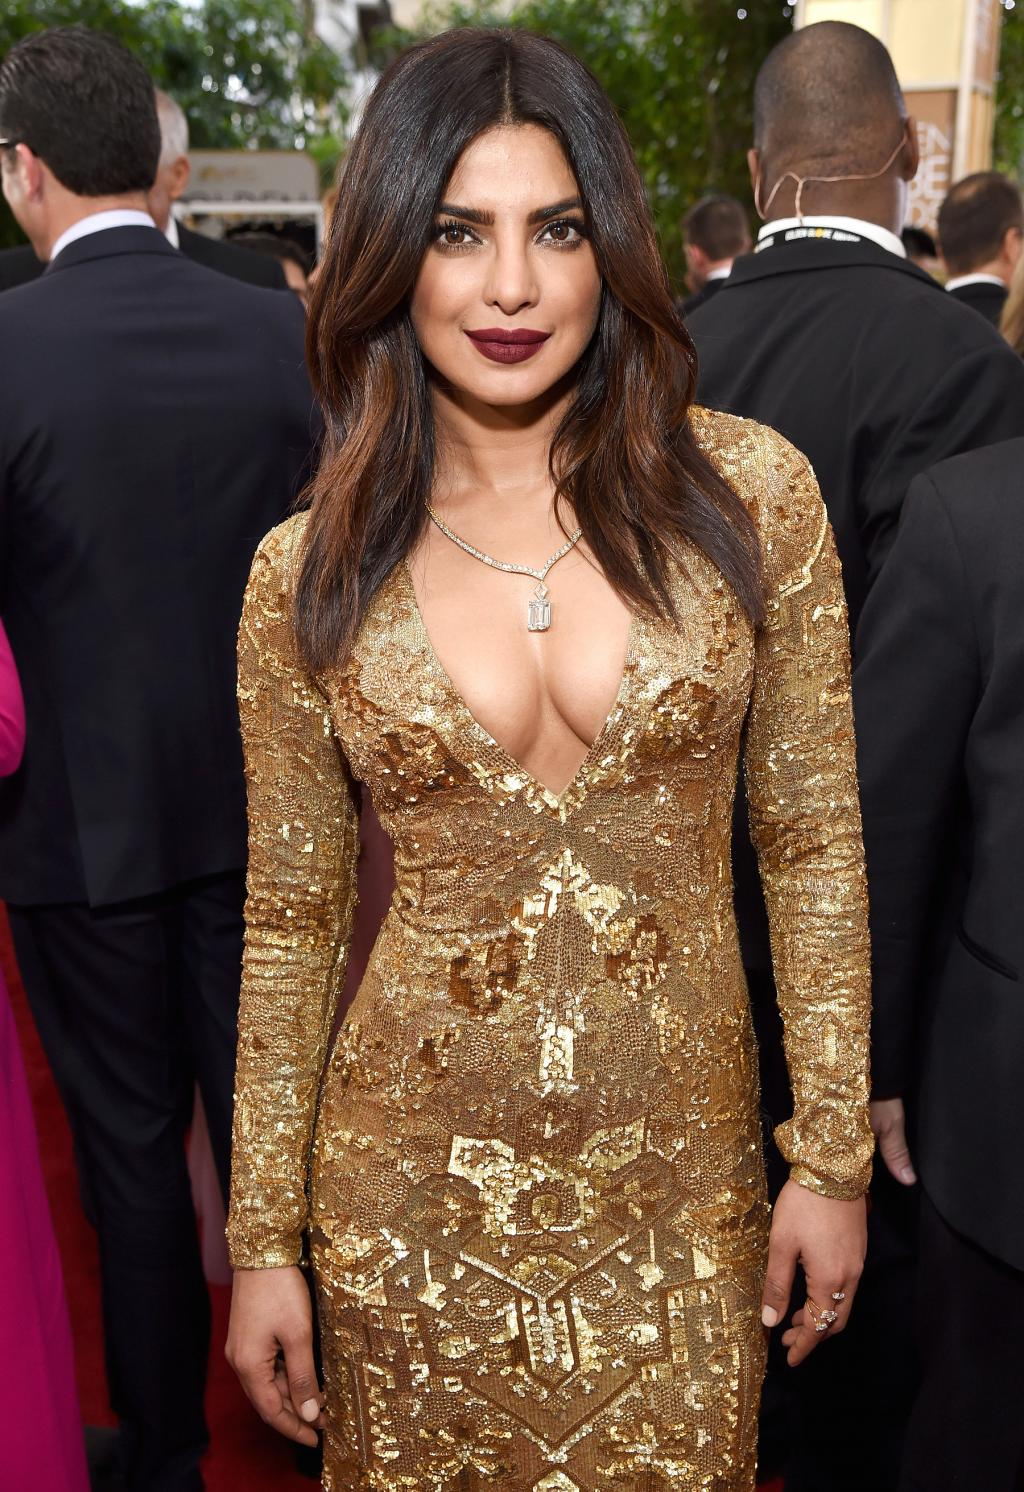 Priyanka Chopra Thanks Fans for Their Support After Fall: 'I Will Be Ok'